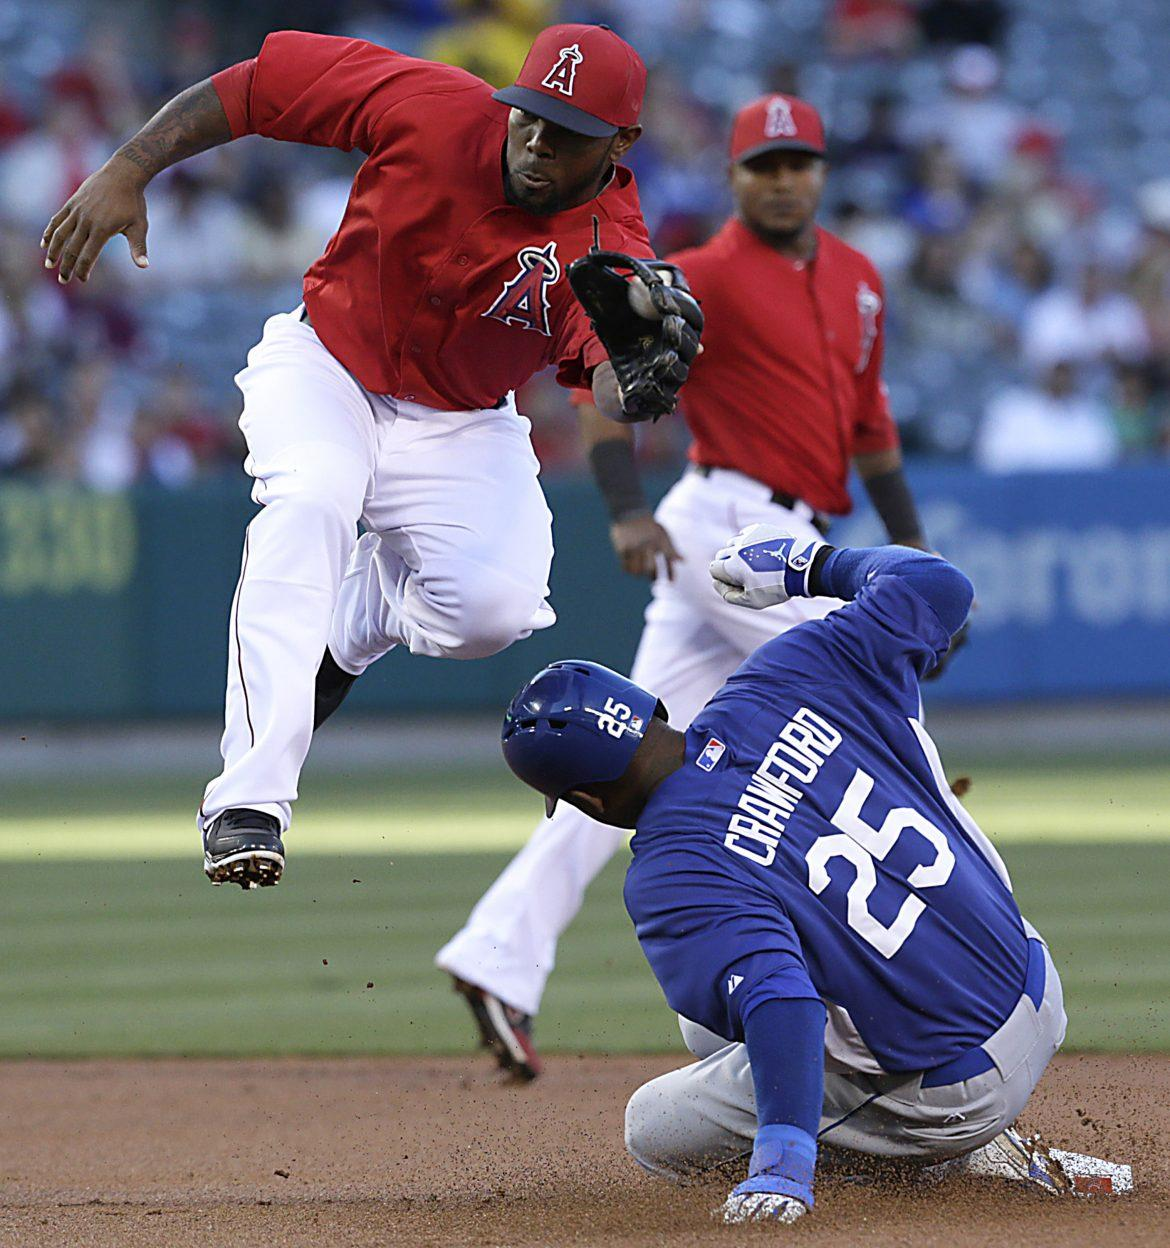 Dodgers and Angels wers both among favorites for the World Series, but suffered early playoff exits. Photo courtesy of MCT.